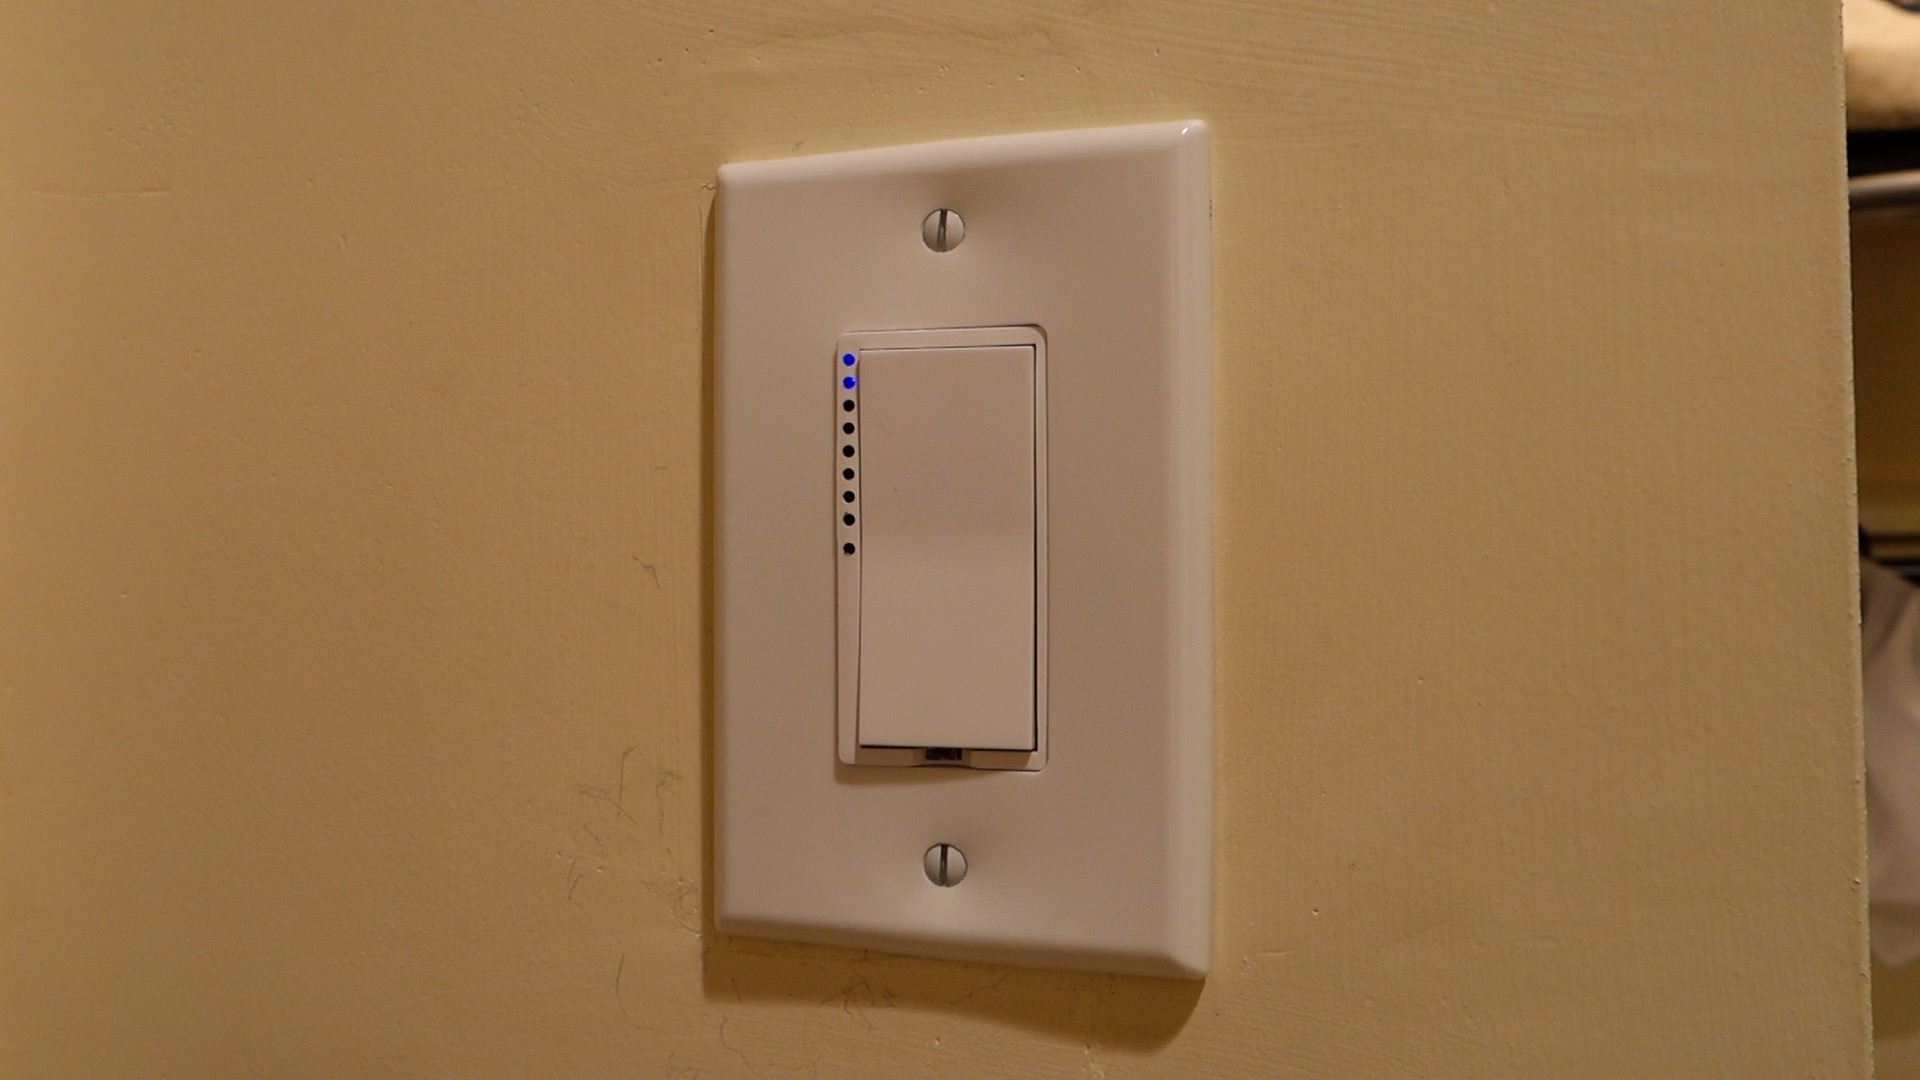 Insteon Wall Dimmer